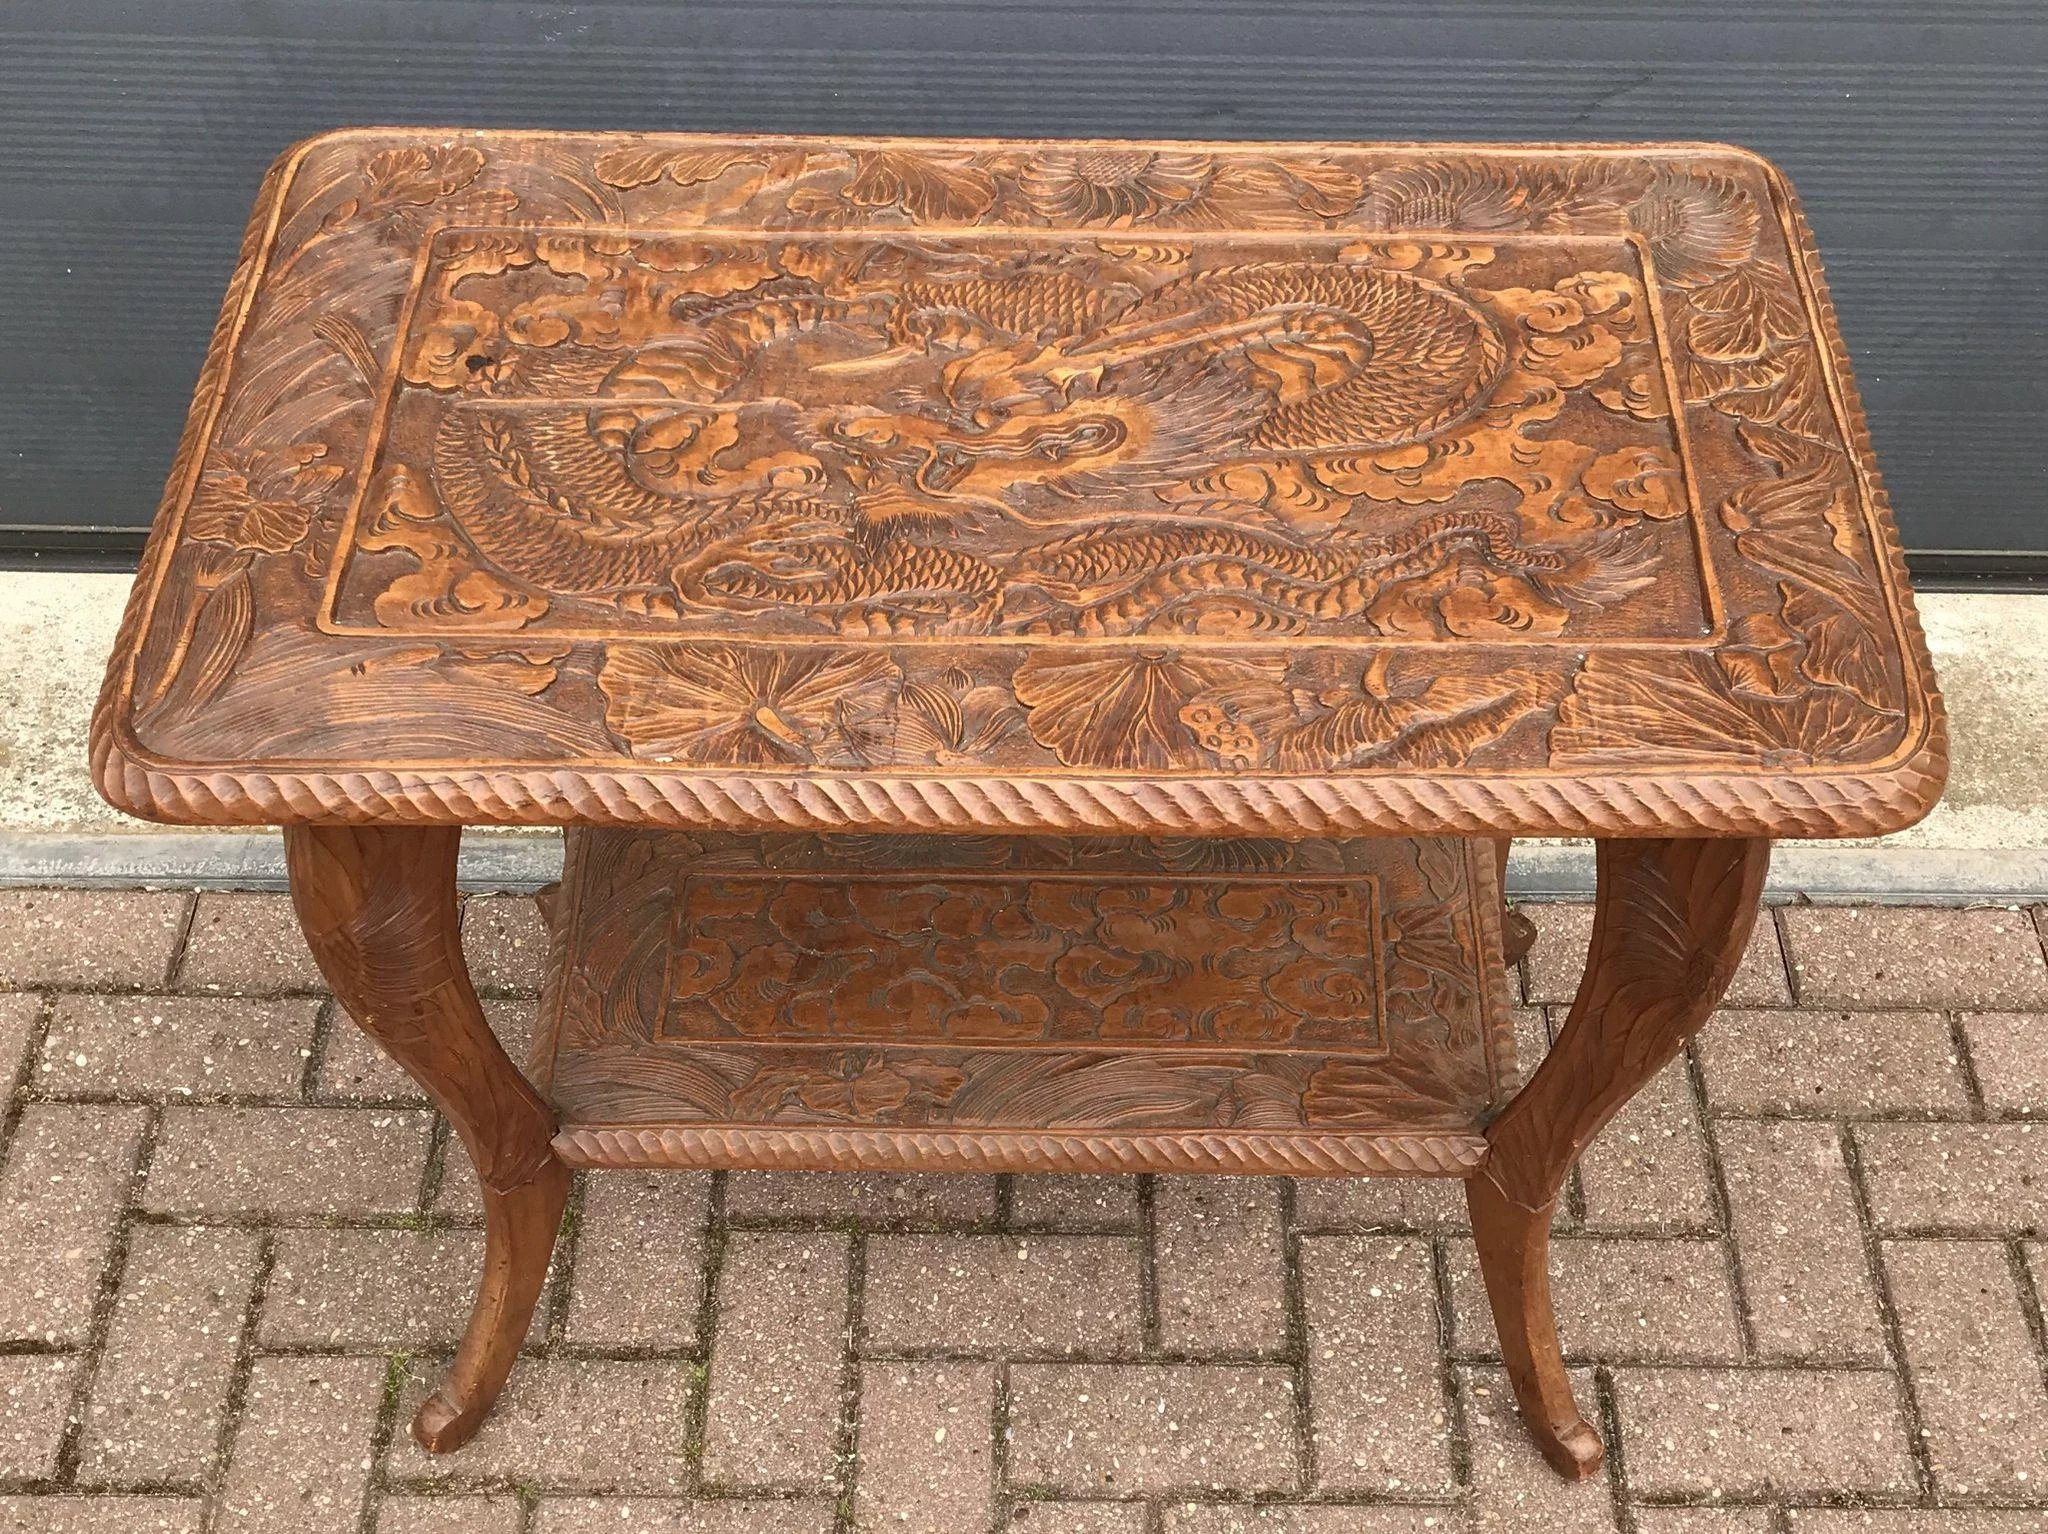 Art nouveau carved wood table with sunflowers and dragon